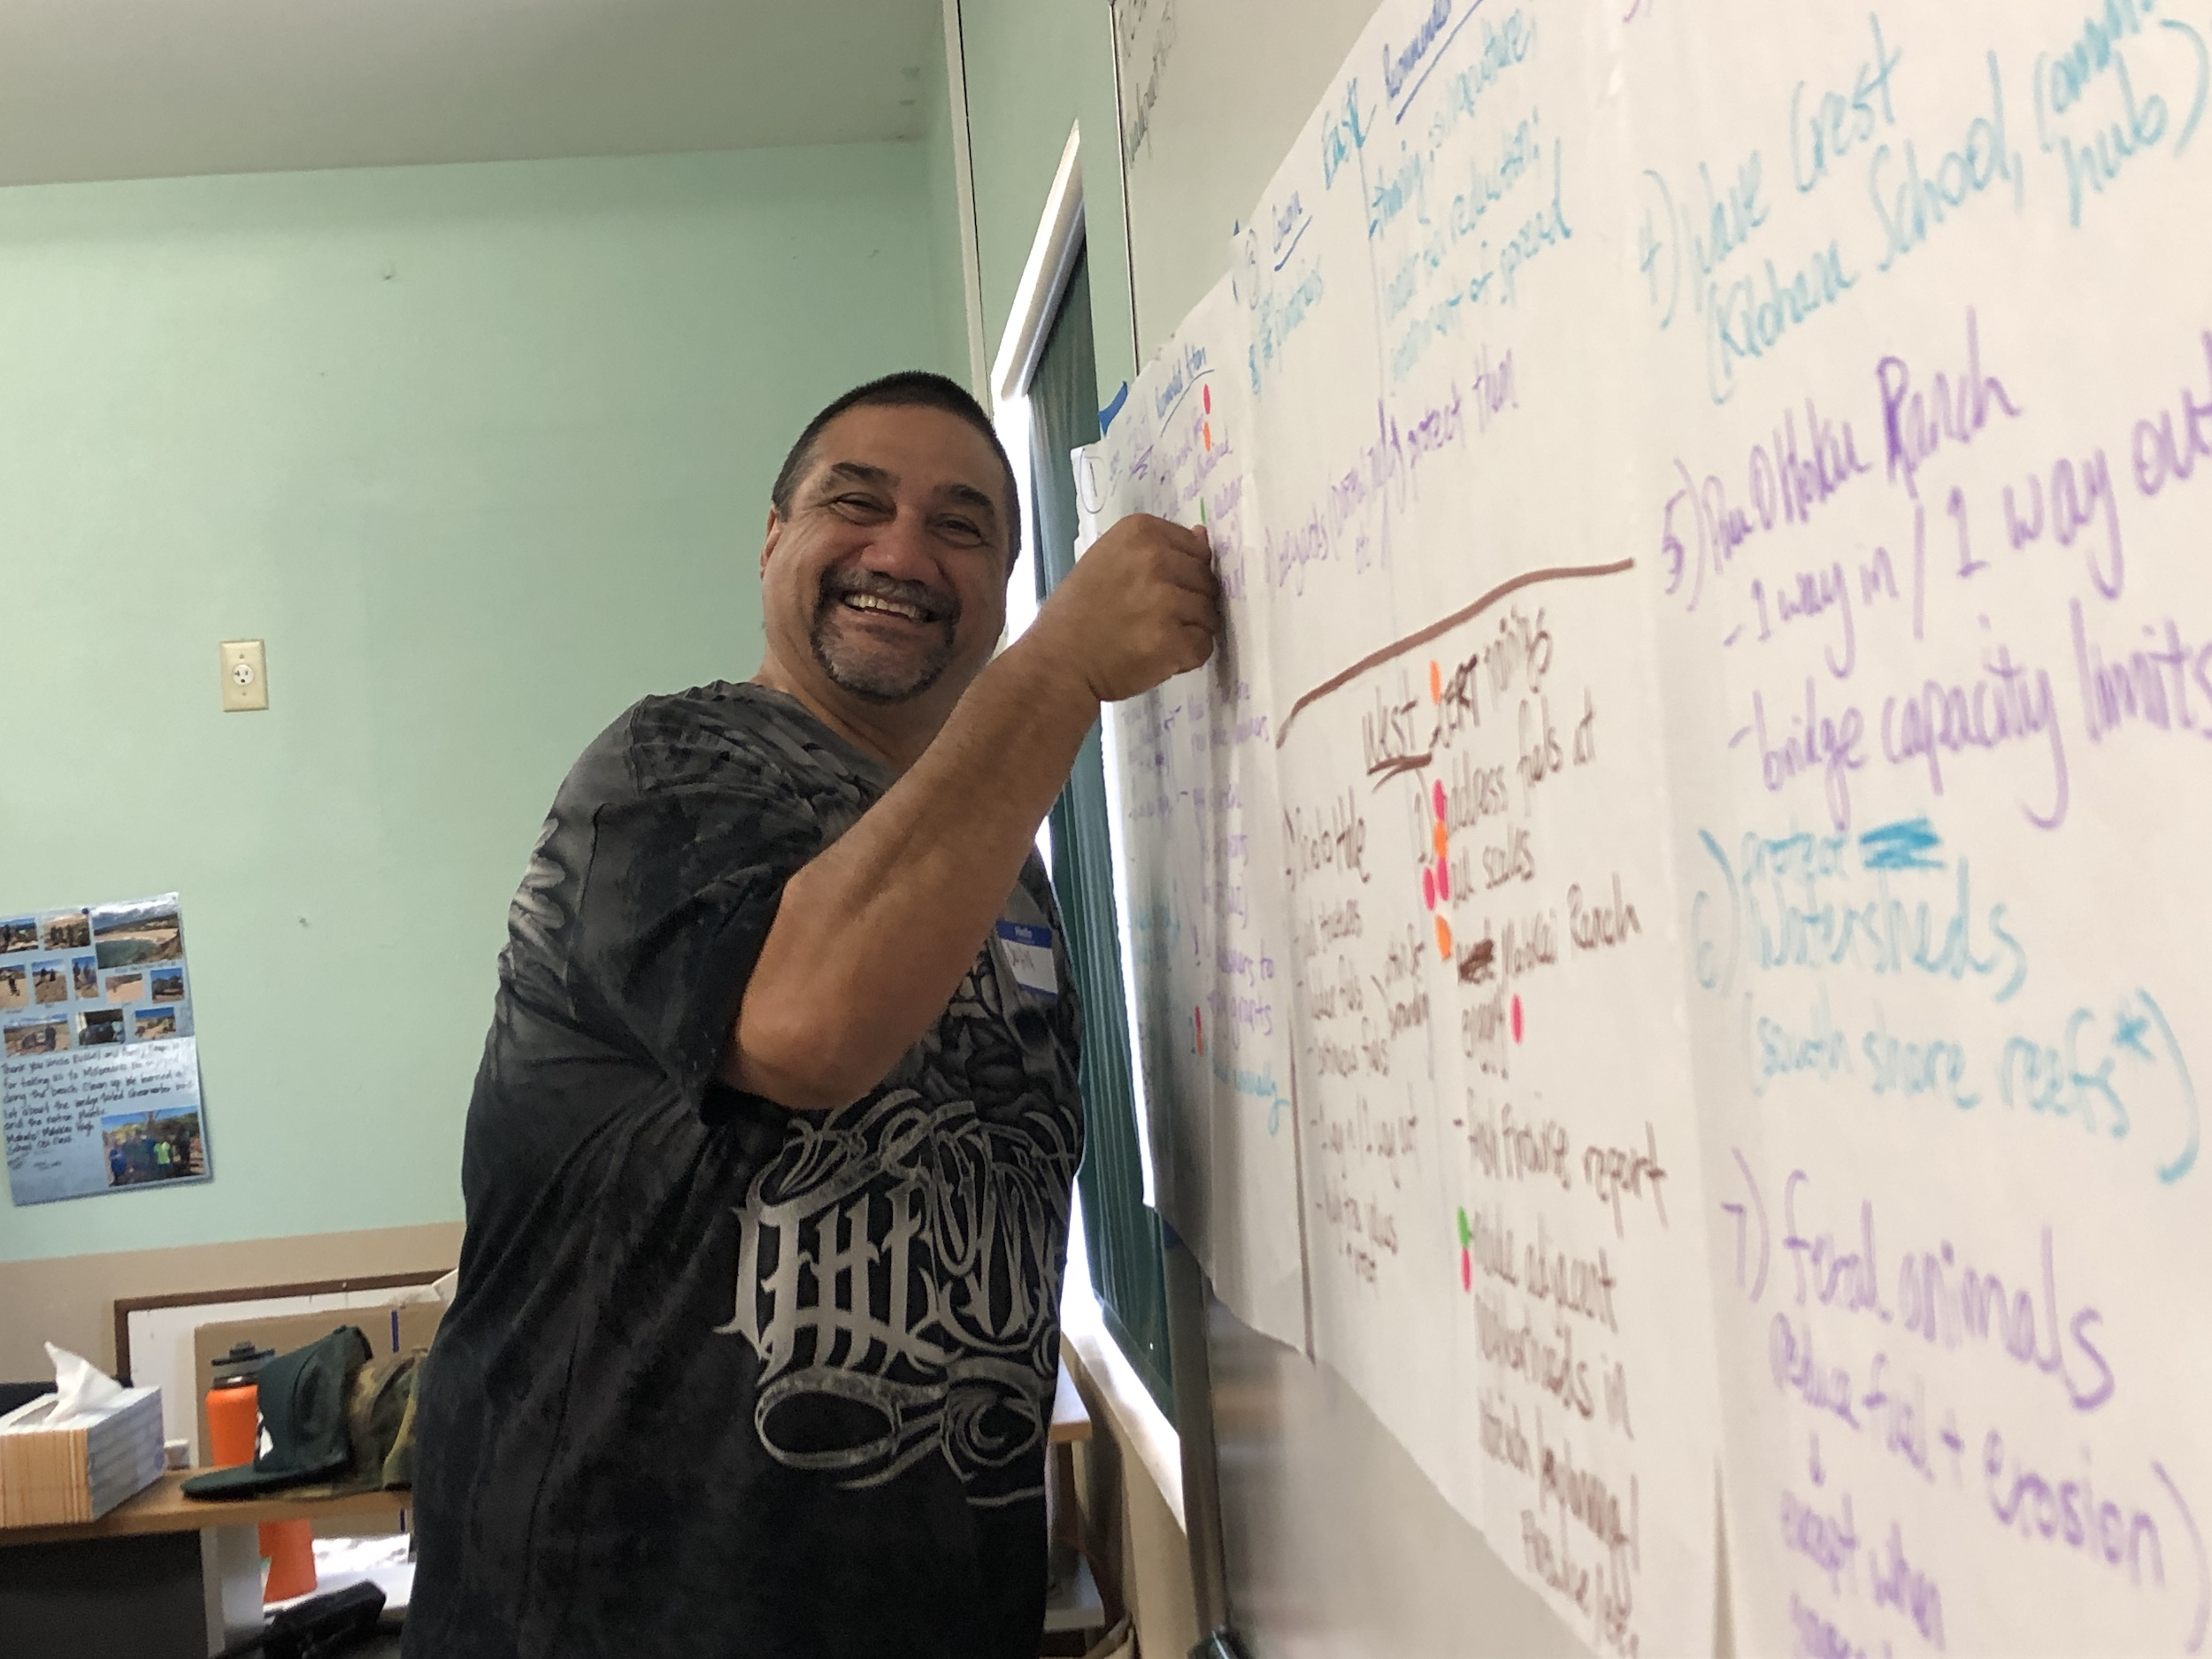 Molokai Vegetative Fuels Management Collaborative Action Planning and Mapping Workshop_4_2_2019_24.JPG